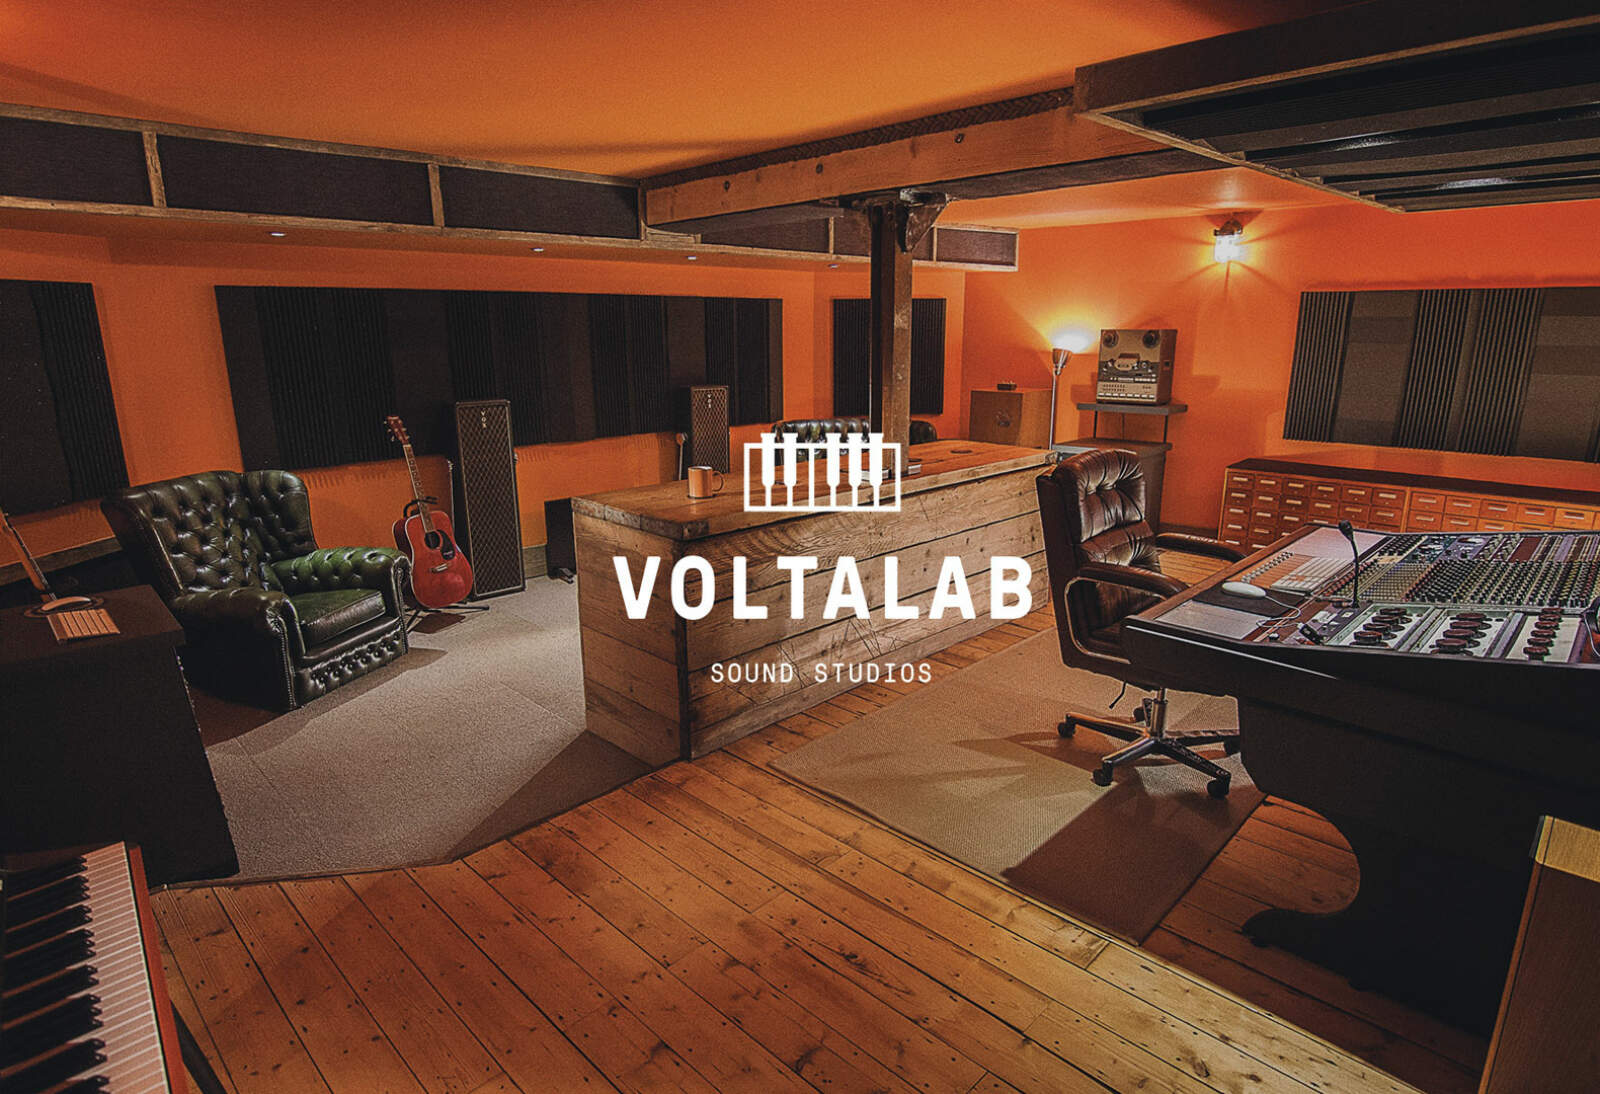 Voltalab logo overlaid on a brand photography of the recording studio.